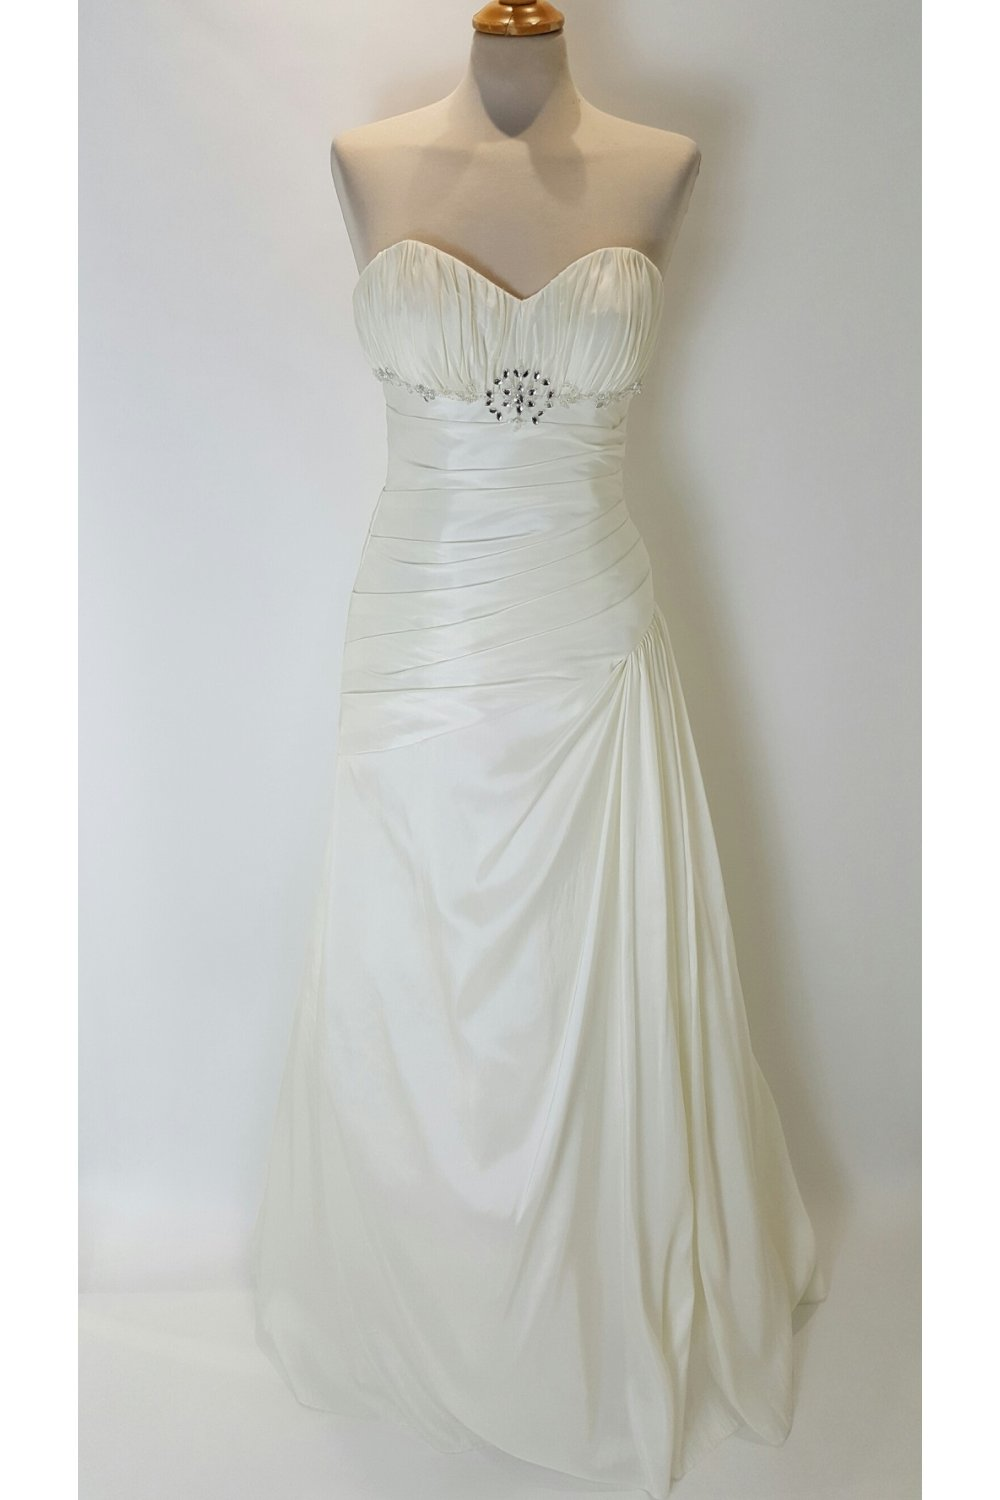 Tiffanys katrina strapless taffeta wedding gown in ivory for Strapless taffeta wedding dress